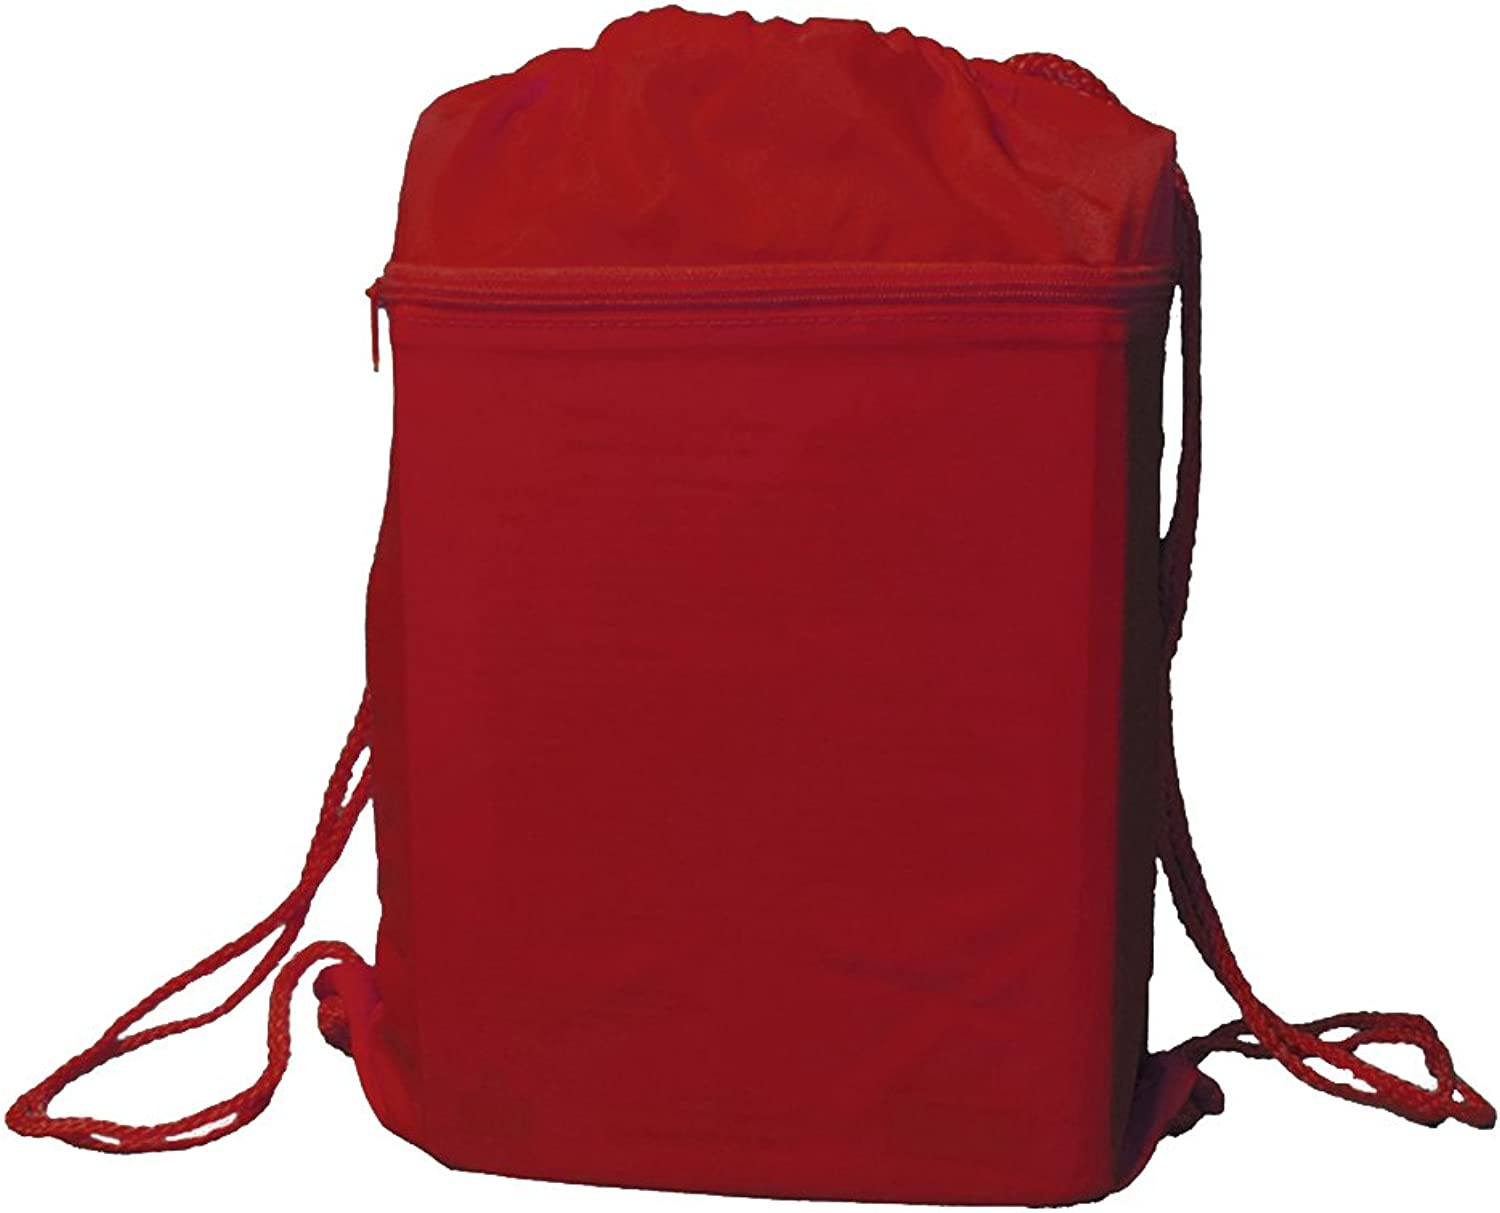 4dbaf68a0491 Drawstring Backpack Bag Solid Bright Red nqikia7098-Sporting goods ...